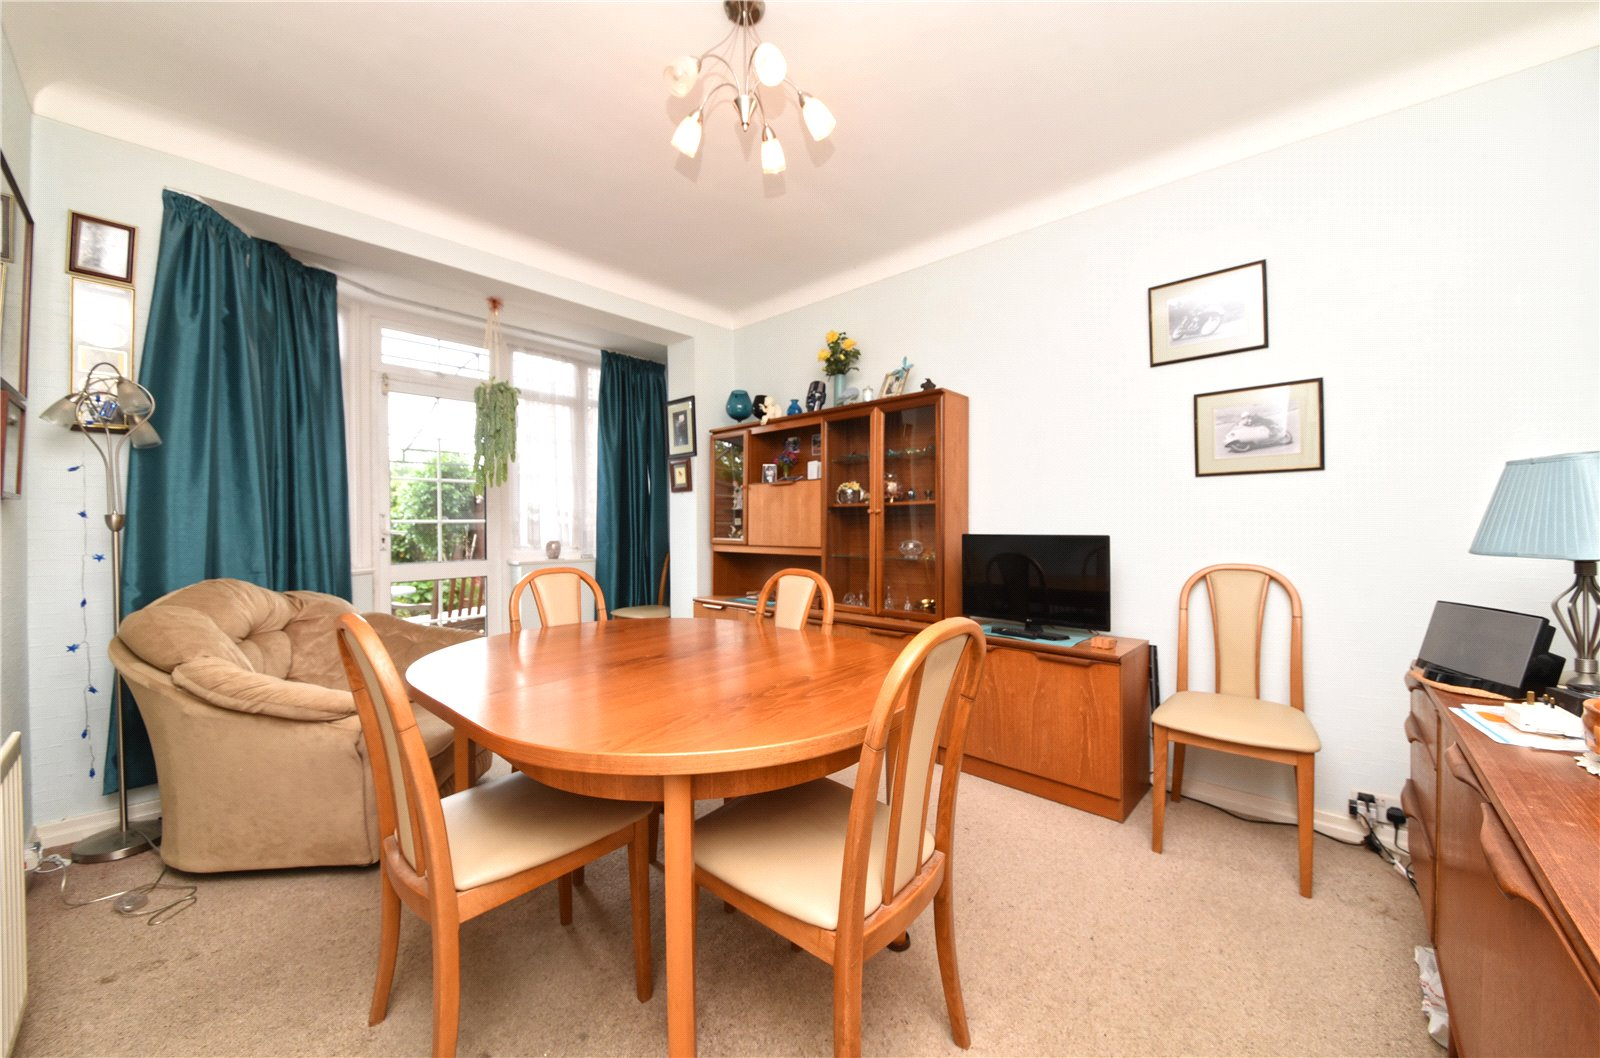 3 bed house for sale in London, N12 9ND 4